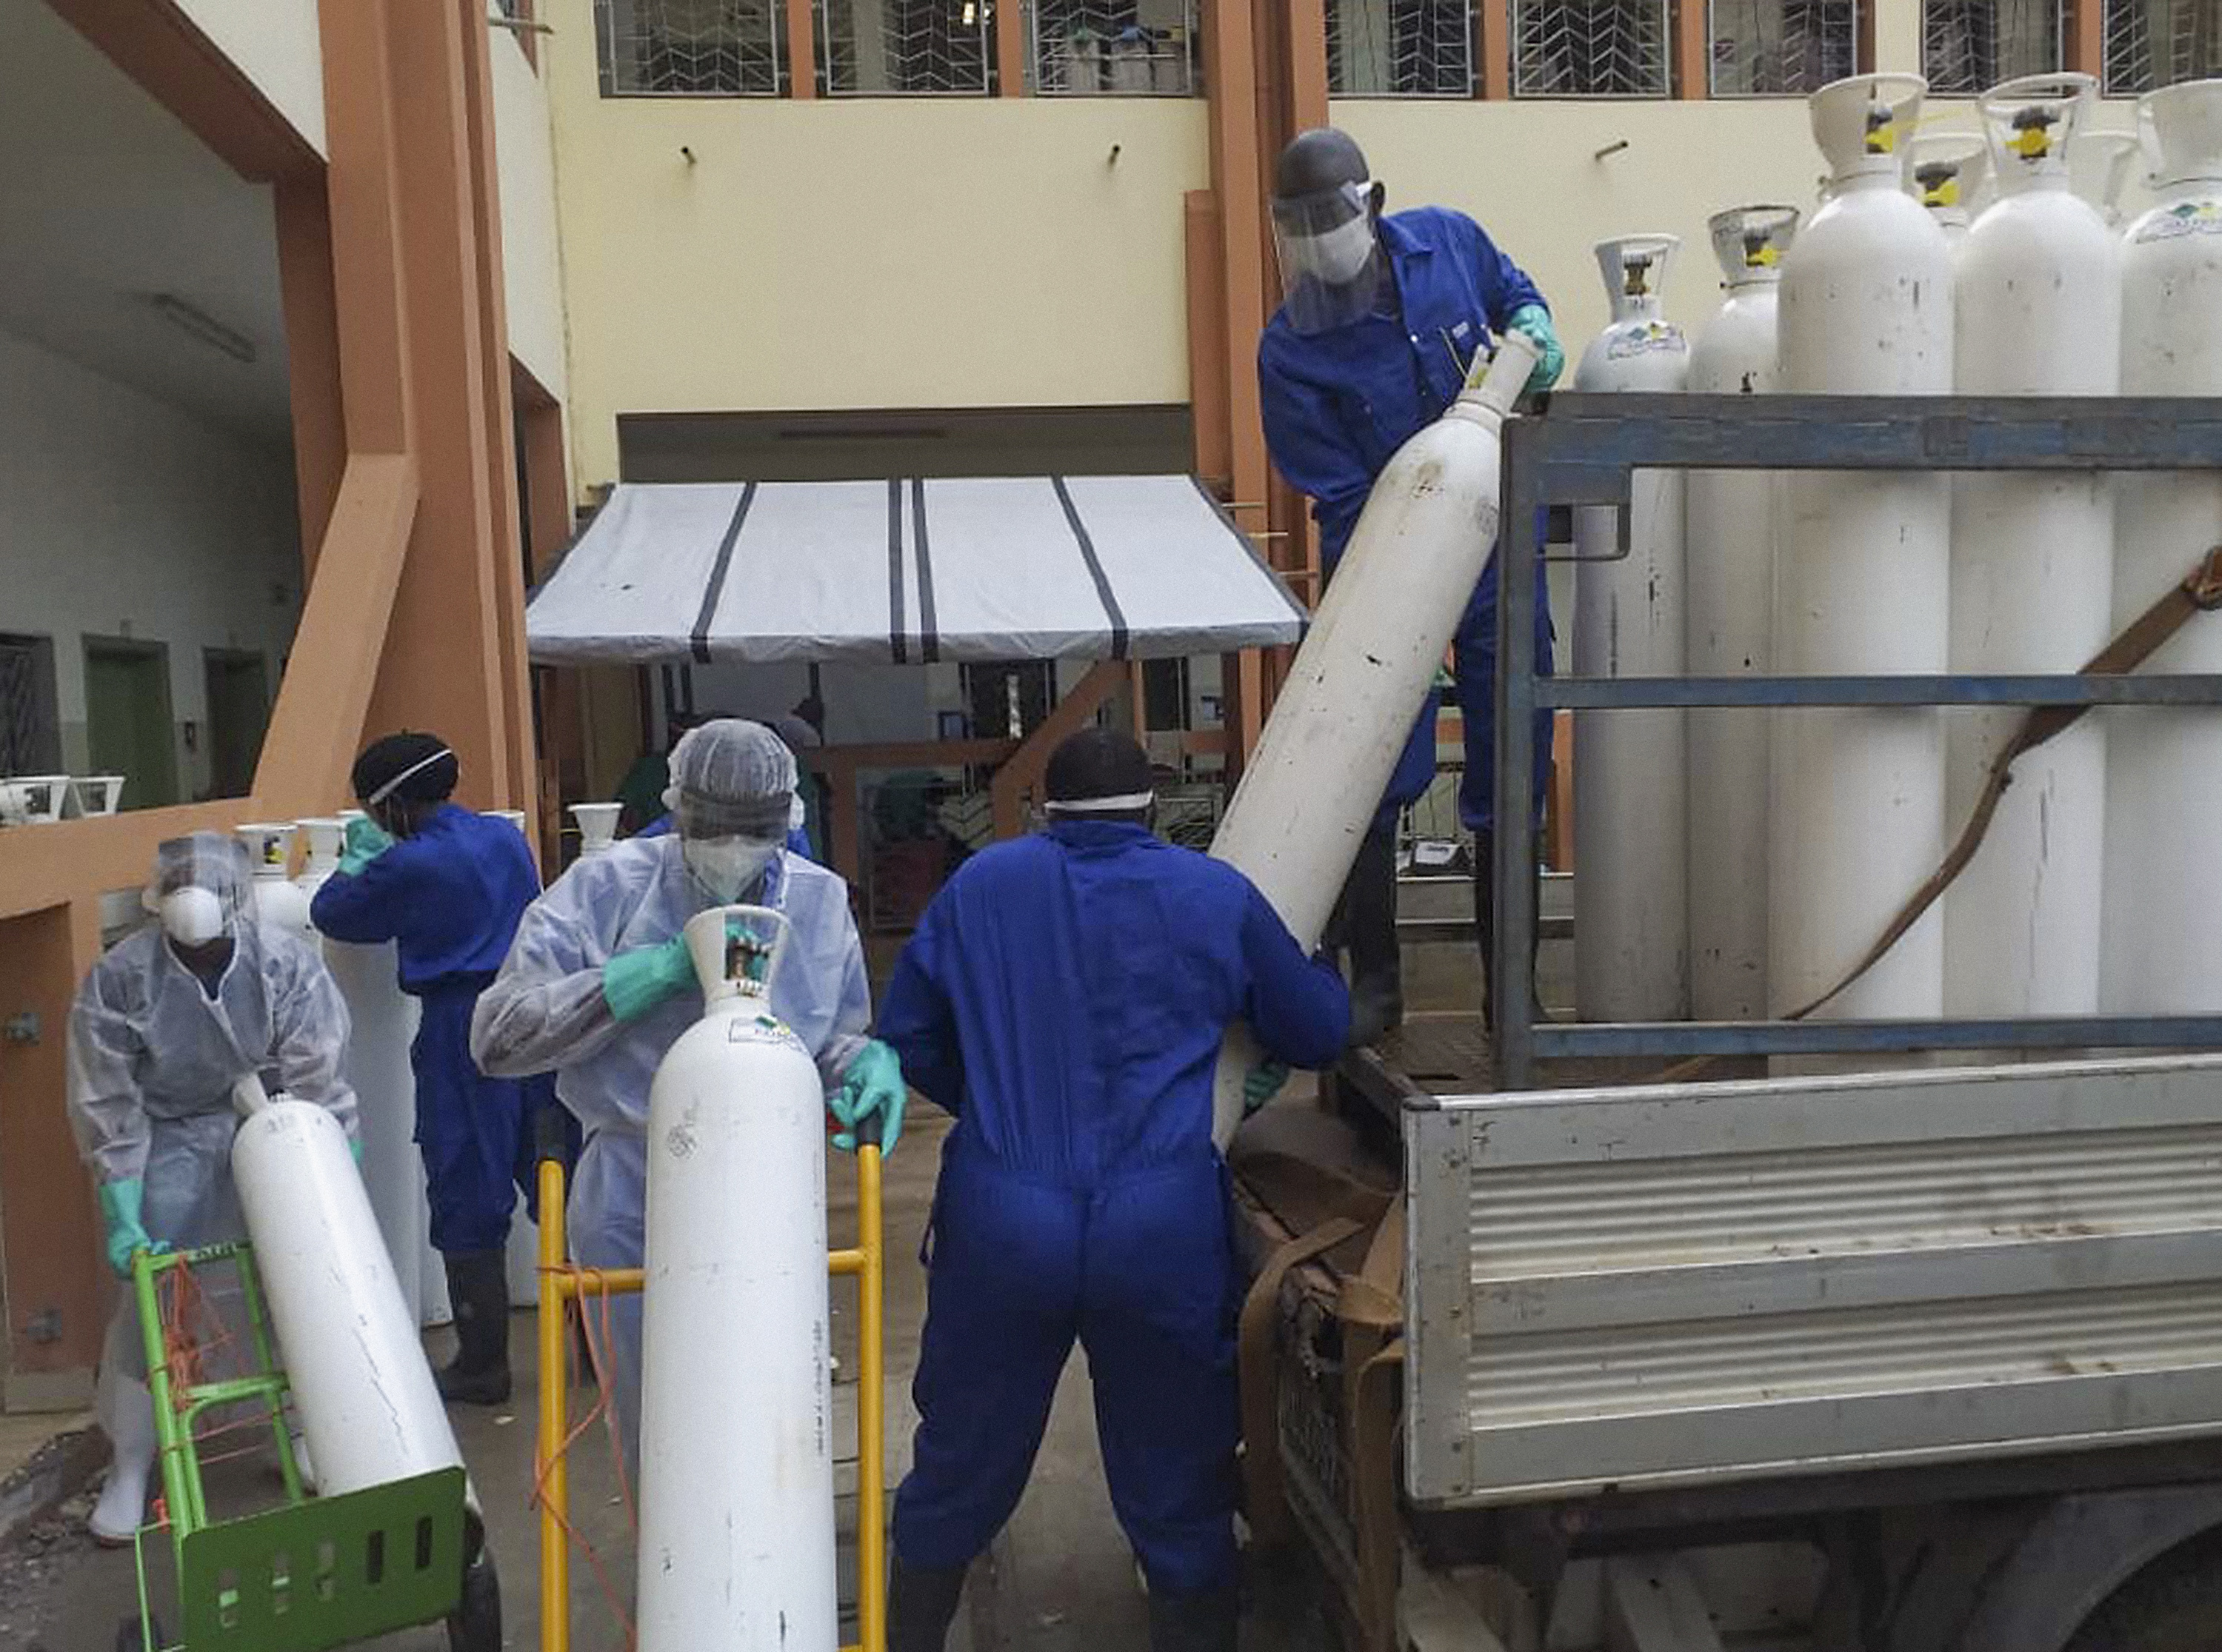 Medical workers offload cylinders of oxygen at the Donka public hospital where coronavirus patients are treated in Conakry, Guinea, on Wednesday, May 20, 2020. Before the coronavirus crisis,u202fthe hospital in the capital was going throughu202f20 oxygen cylinders a day. By May, the hospital was at 40 a day and rising, according to Dr.u202fBillyu202fSivaherau202fofu202fthe aid group Alliance for International Medical Action. Oxygenu202fis the the facility's fastest-growingu202fexpense, and the daily deliveries of cylinders are taking their toll on budgets. Photo: AP